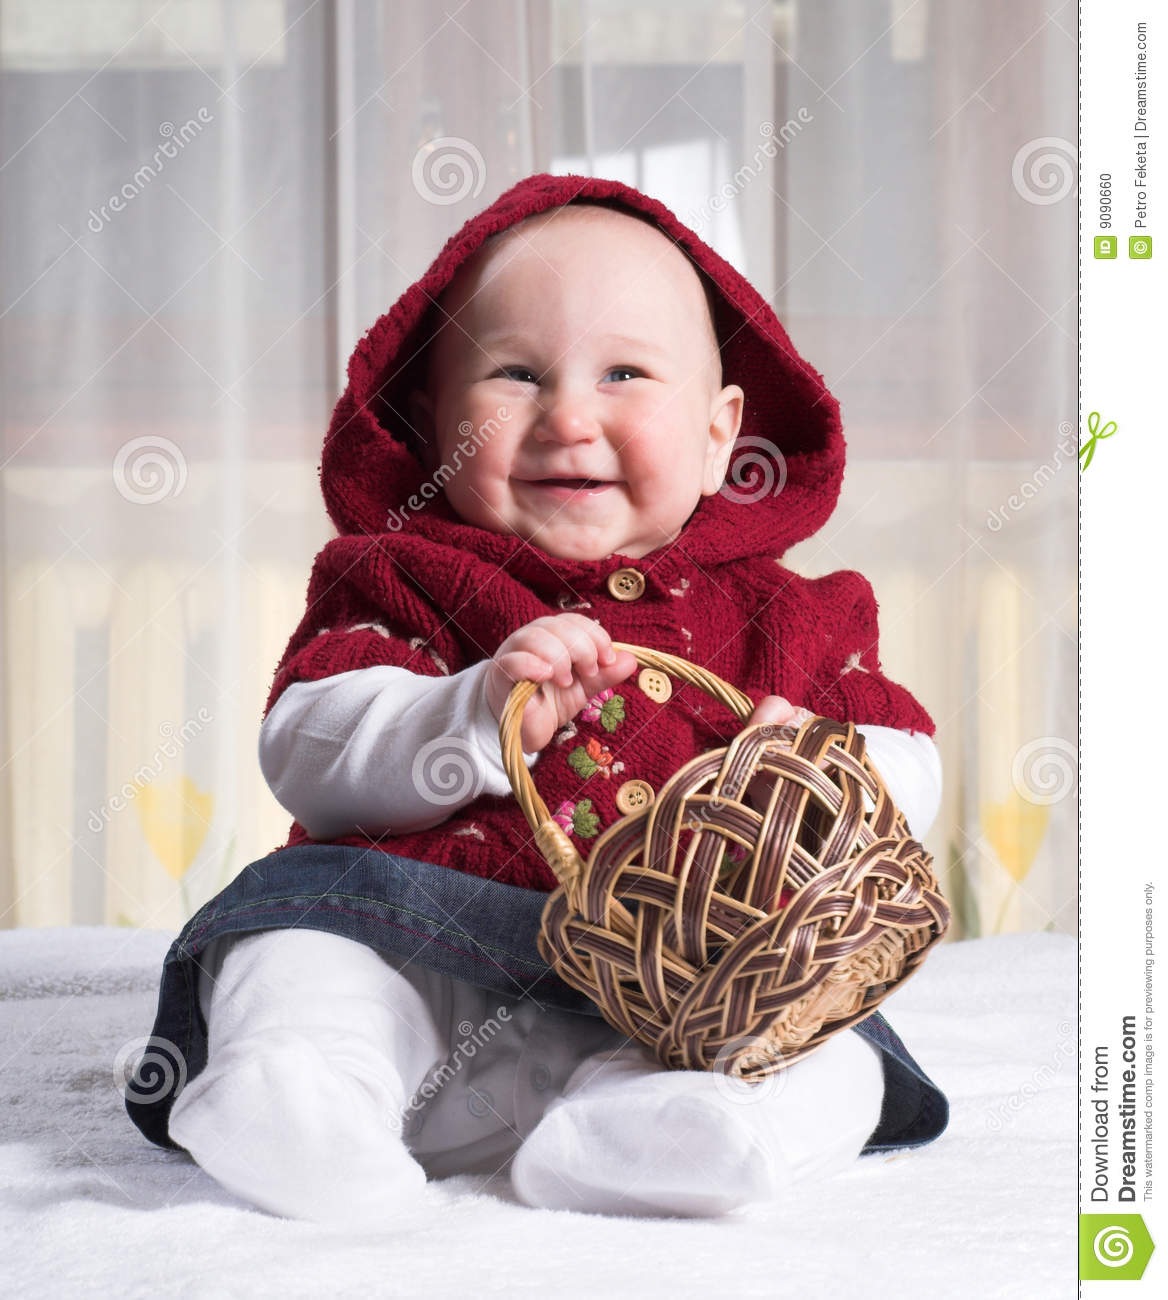 Smiling baby with basket